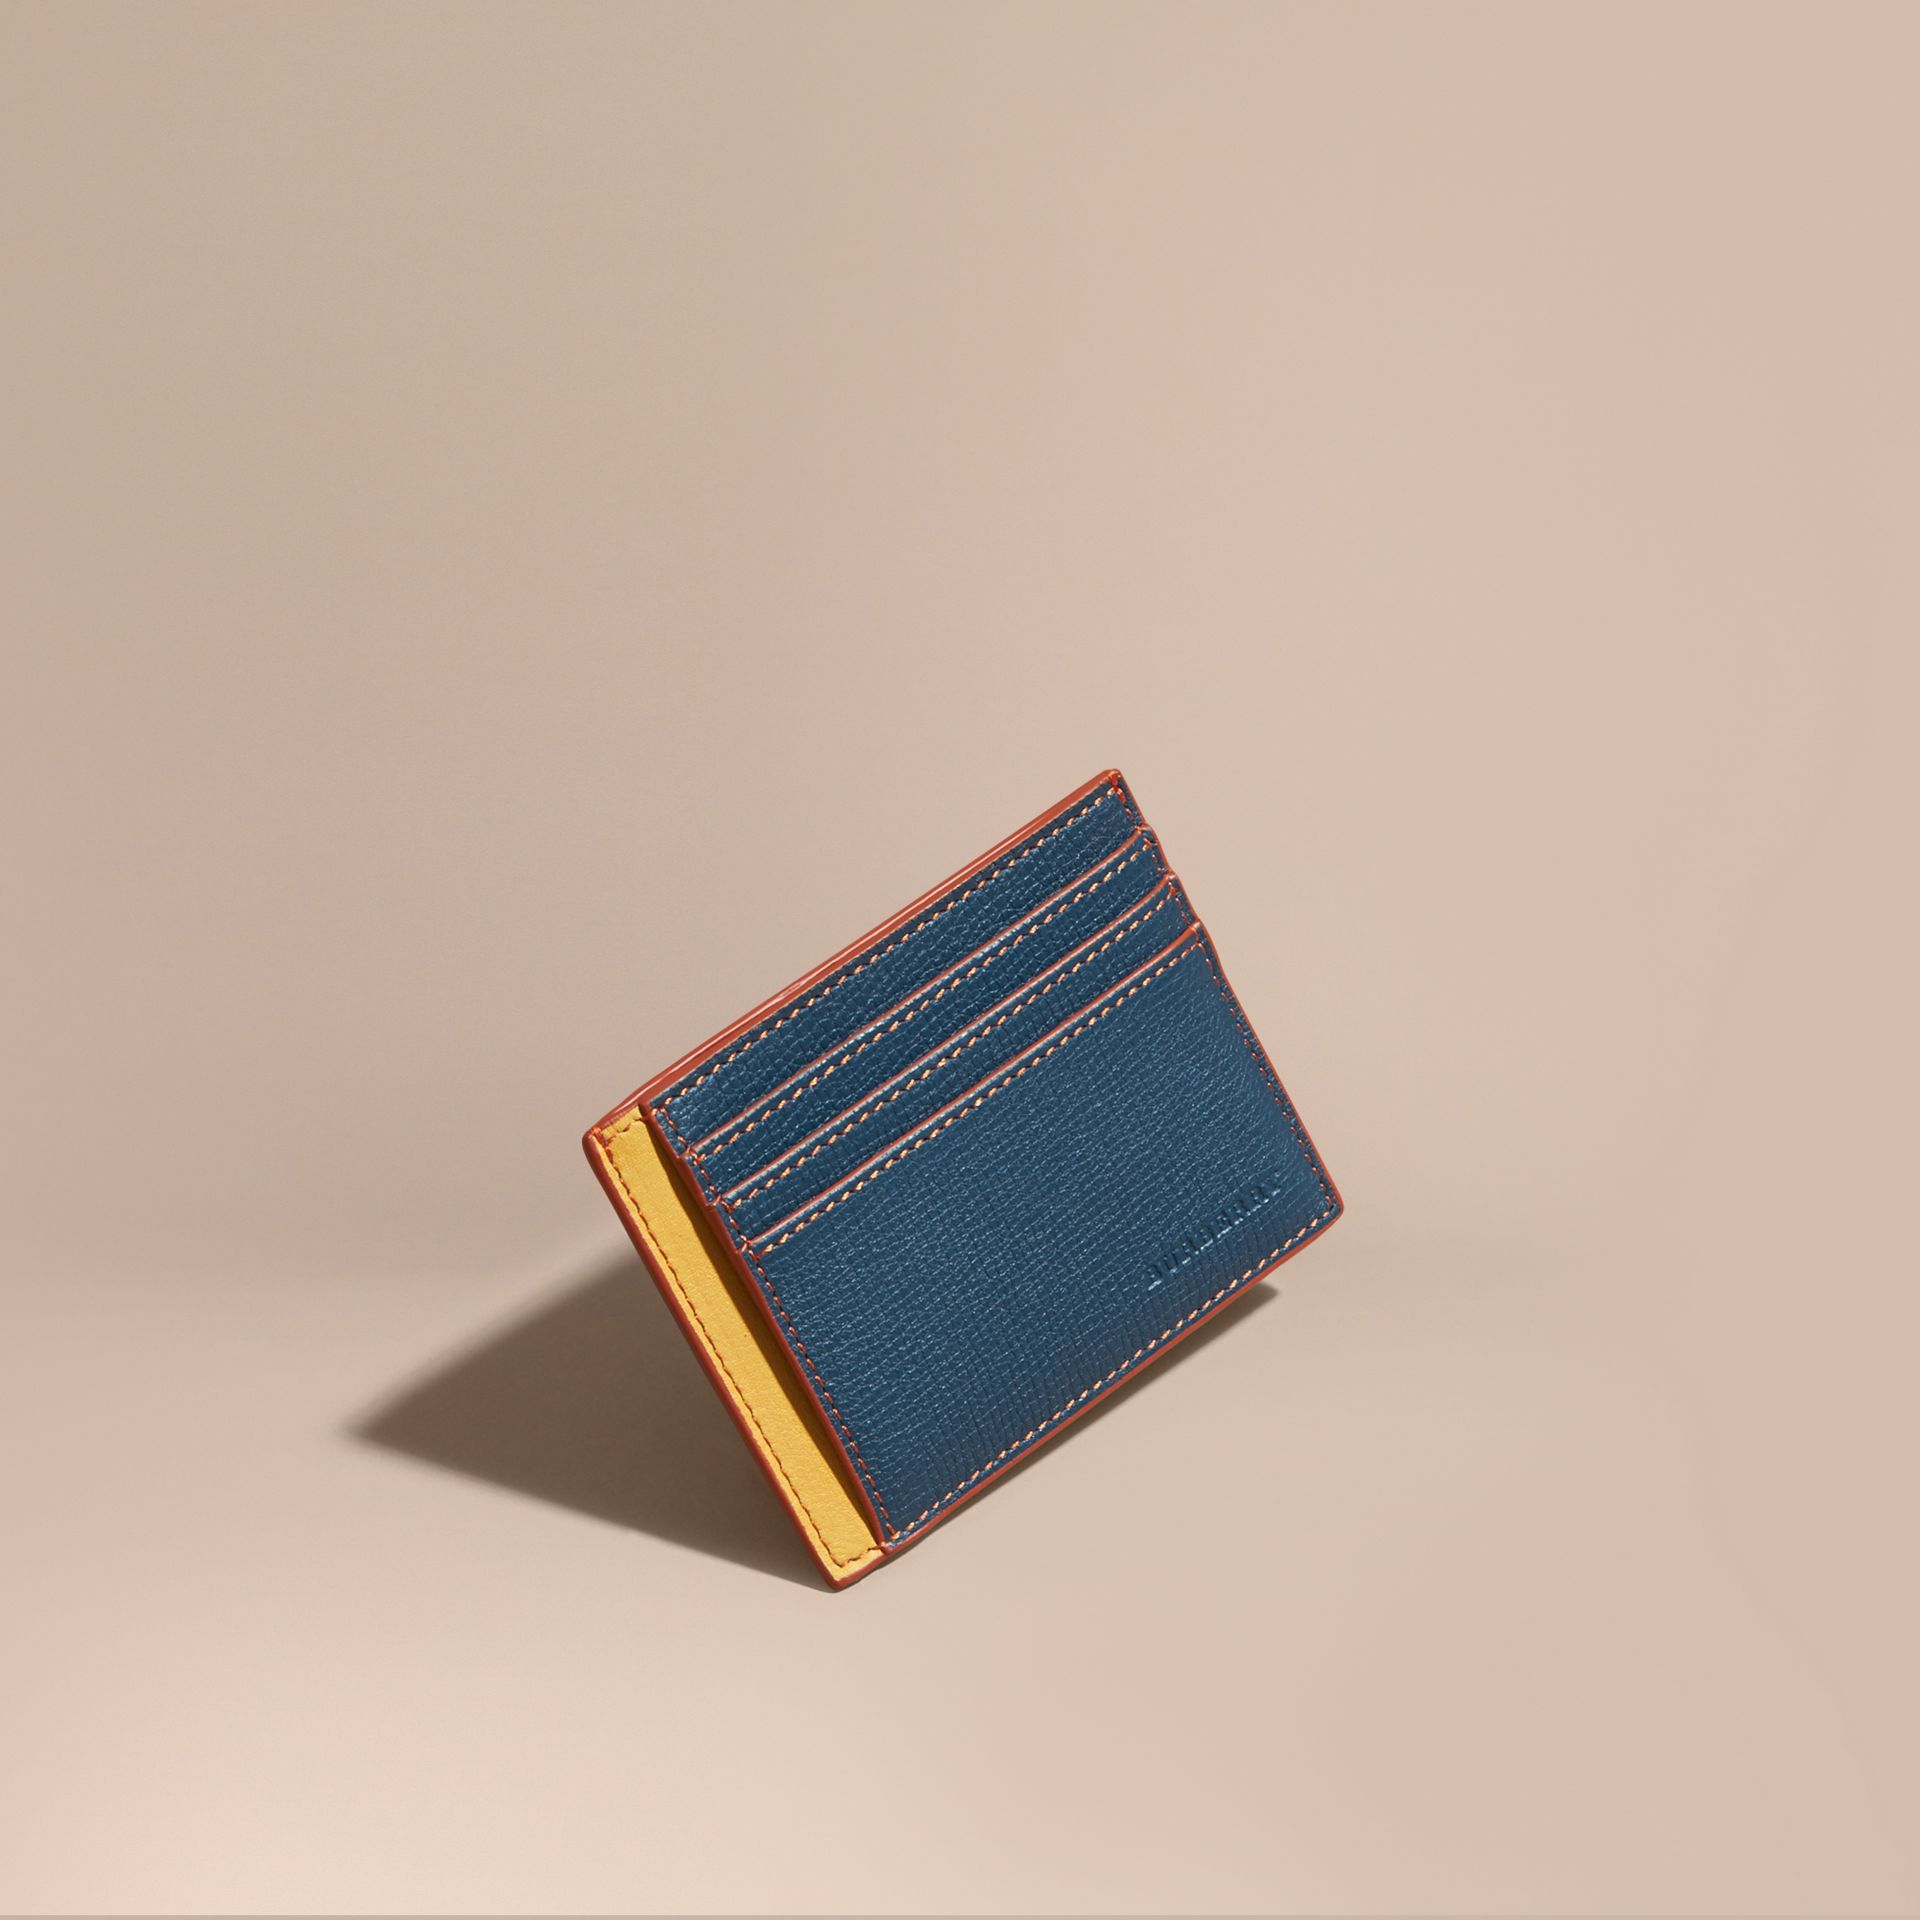 Colour Block Leather Card Case in Marine Blue - gallery image 1